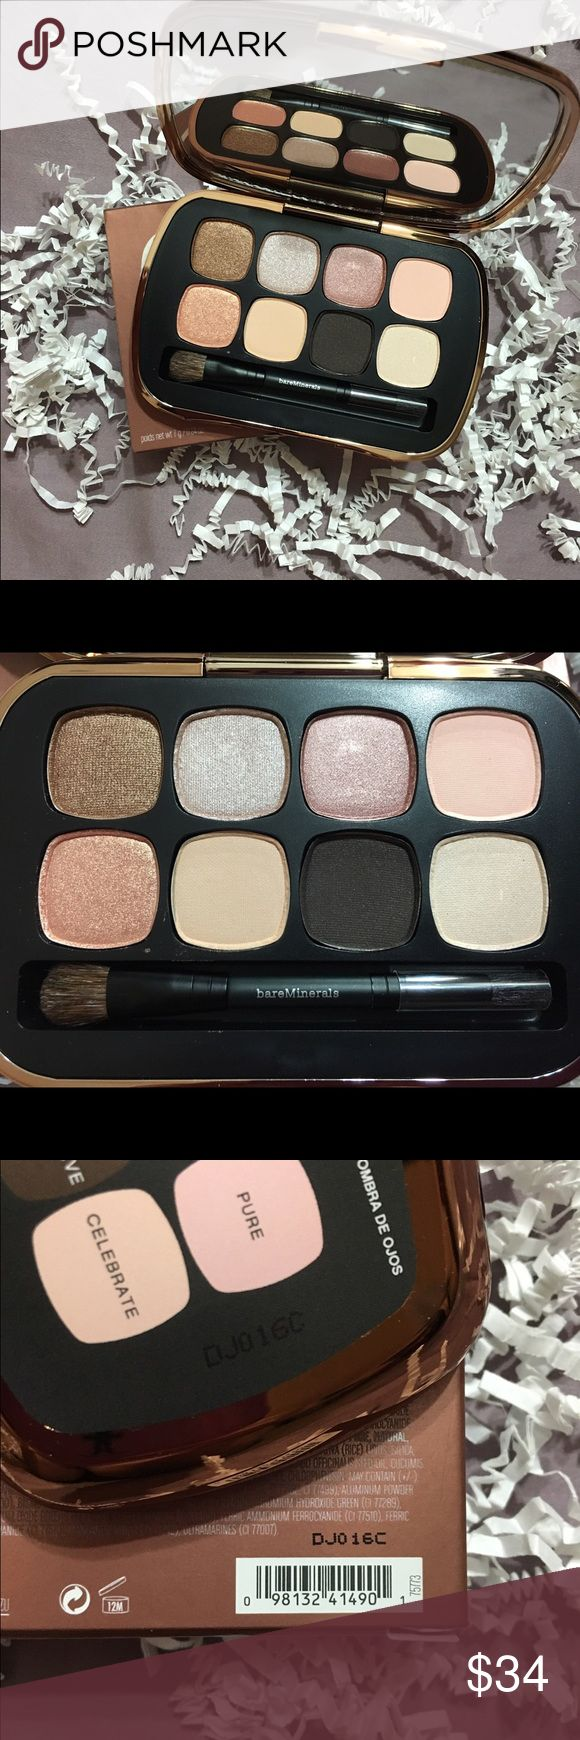 Bare Minerals Sexy Neutrals 8.0 BareMinerals Sexy Neutrals 8.0. Brand new in box (this means unused and unswatched). Gorgeous colors! Please ask any questions you may have and Ill be happy to answer to the best of my ability! bareMinerals Makeup Eyeshadow